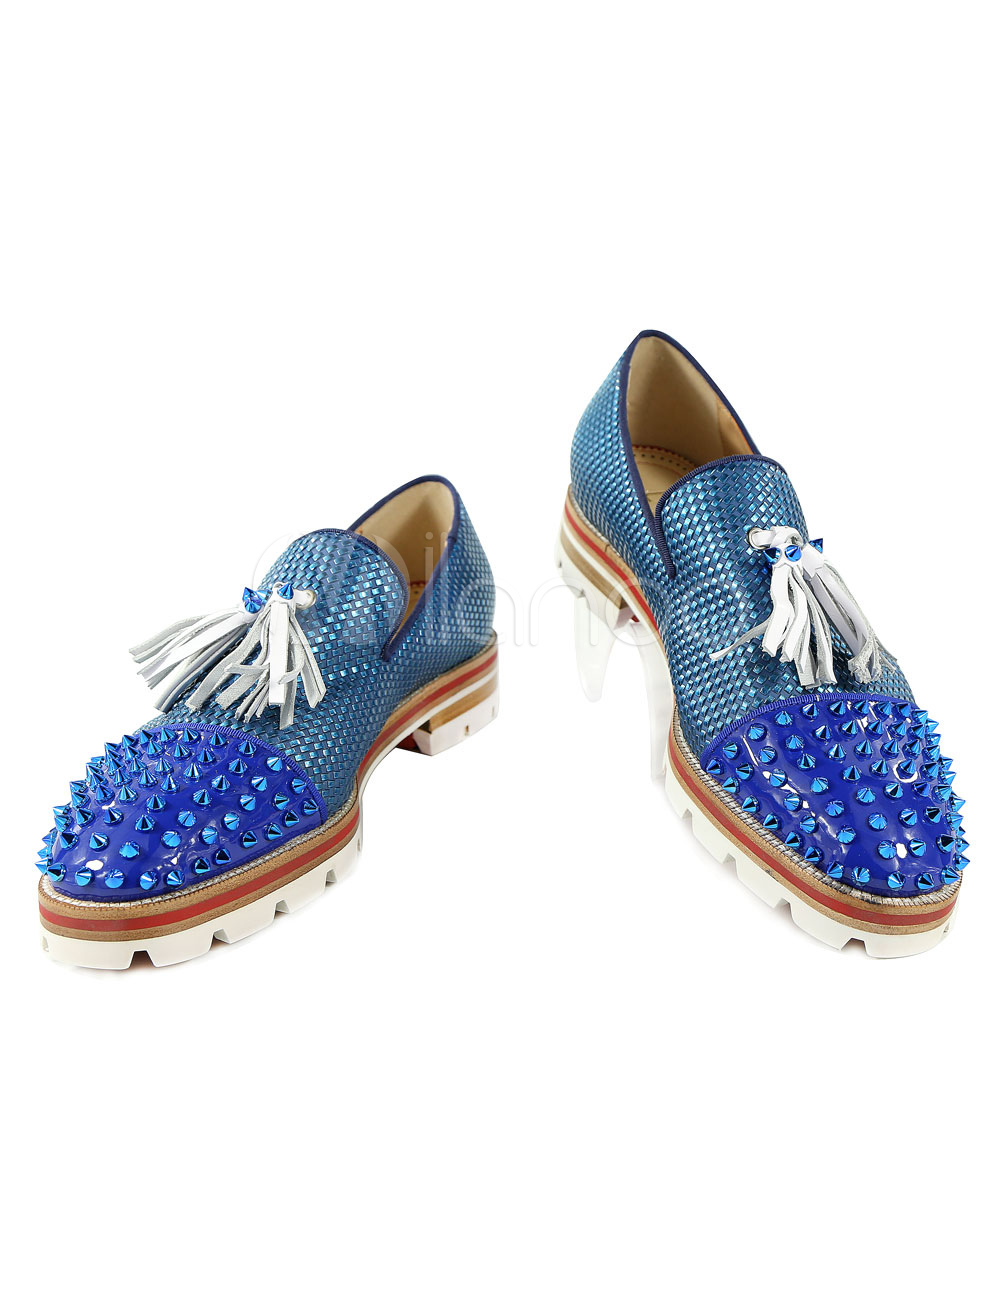 Buy Blue Dress Shoes Leather Men's Round Toe Rivets Beaded Slip On Loafers With Tassels for $87.49 in Milanoo store